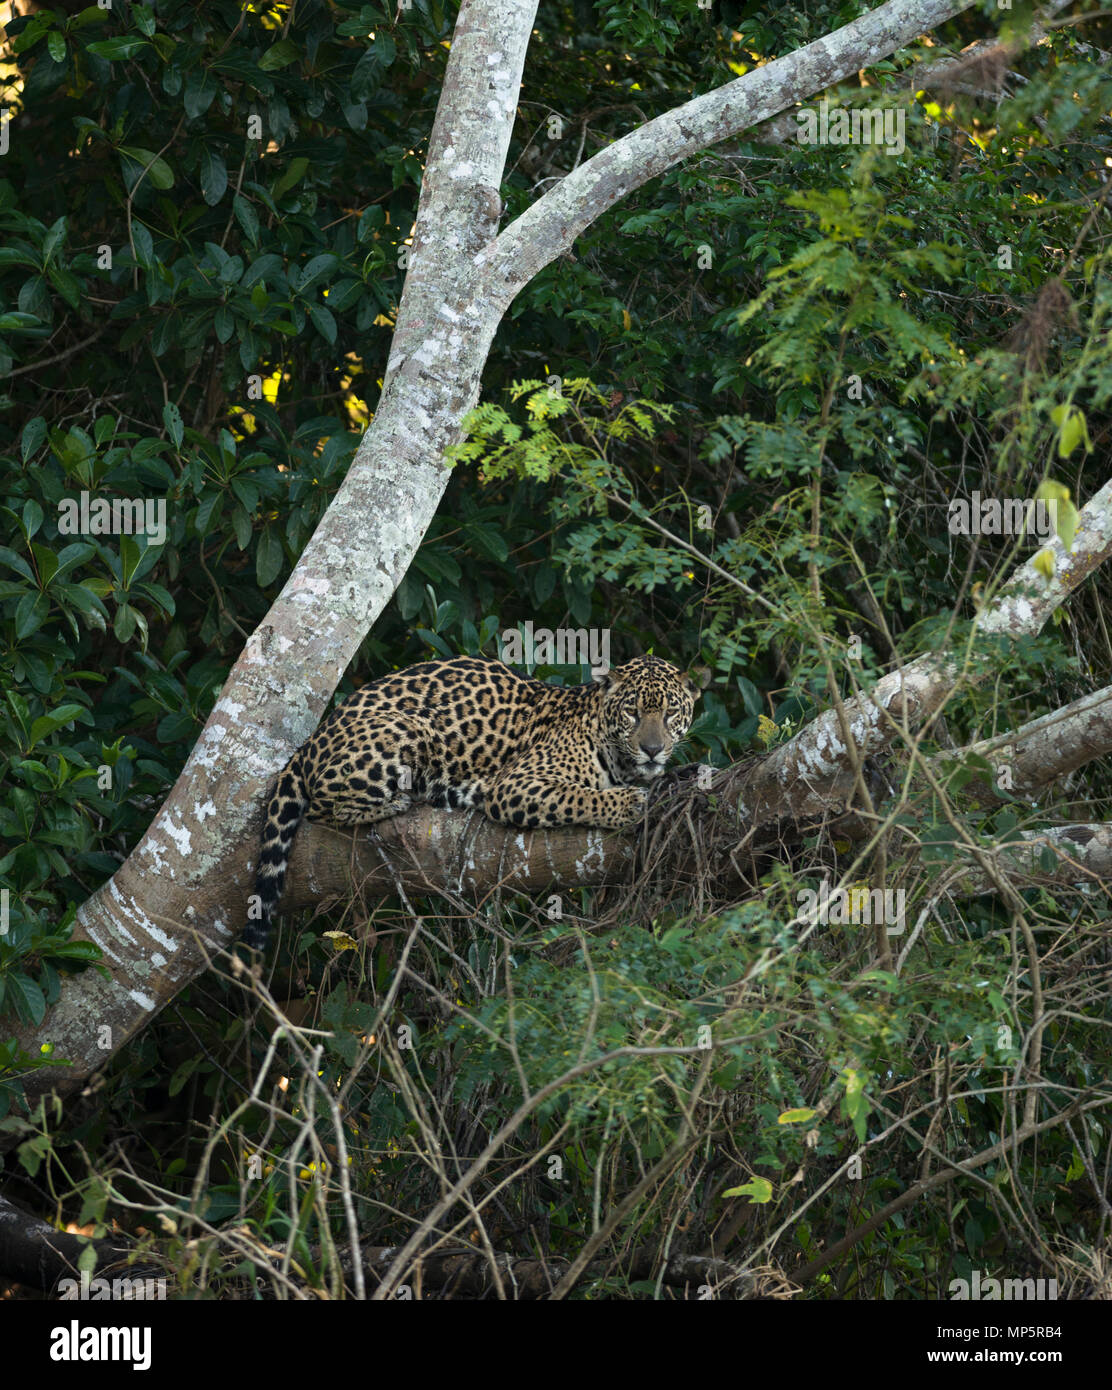 A Jaguar resting on a tree in North Pantanal, Brazil - Stock Image